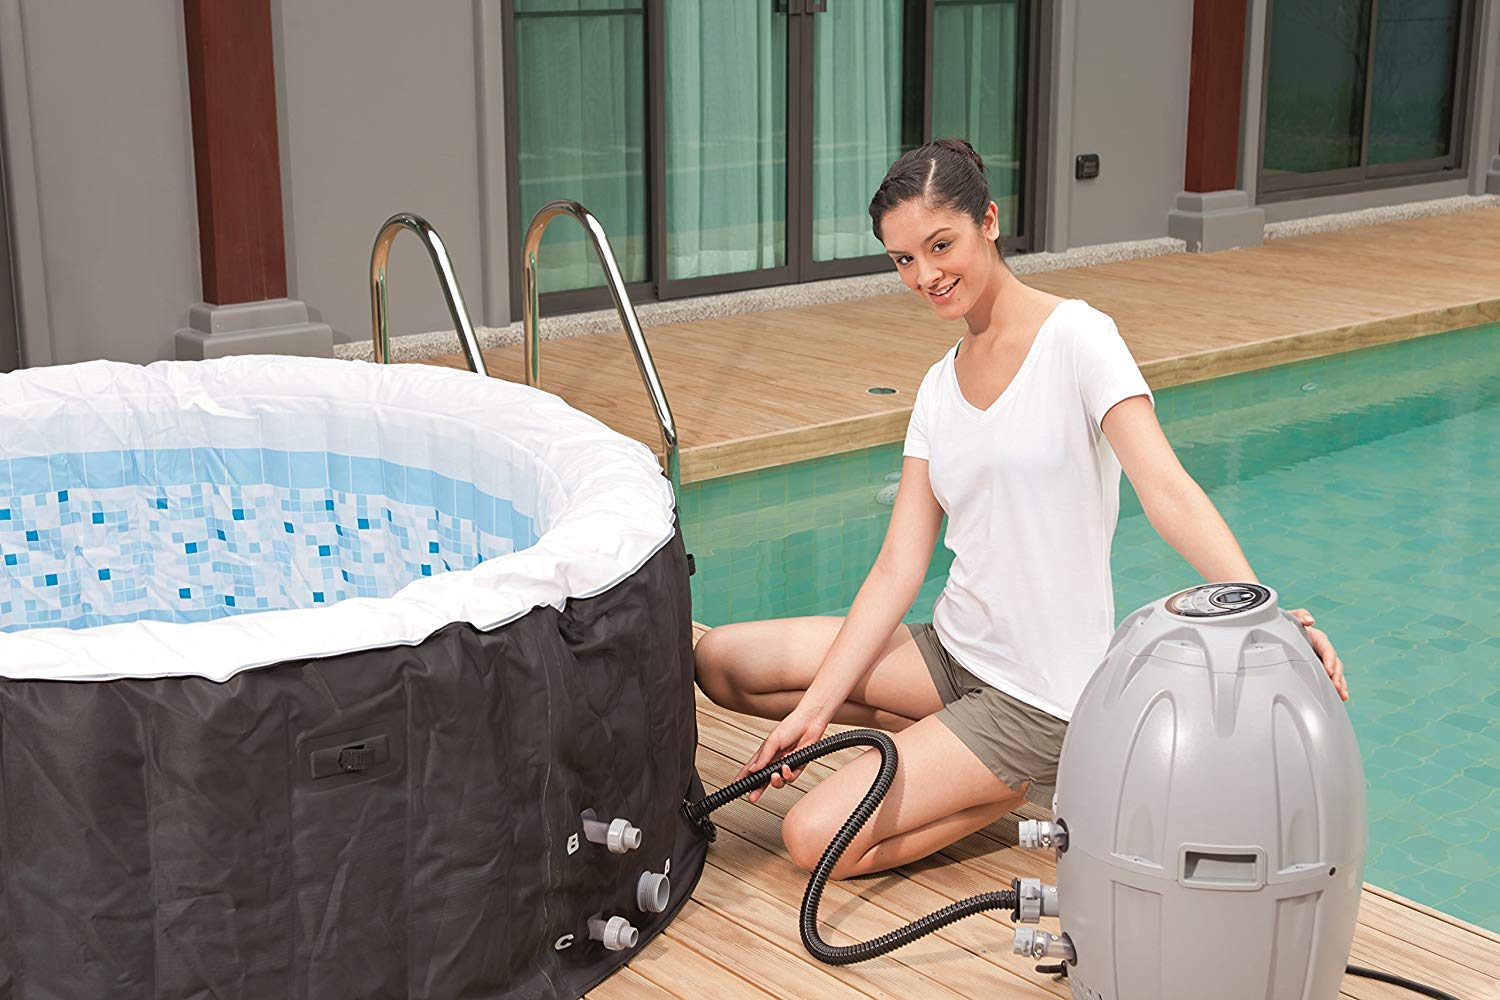 Top Rated Low Price Inflatable SaluSpa Miami Hot Tub | Best Spa of 2018